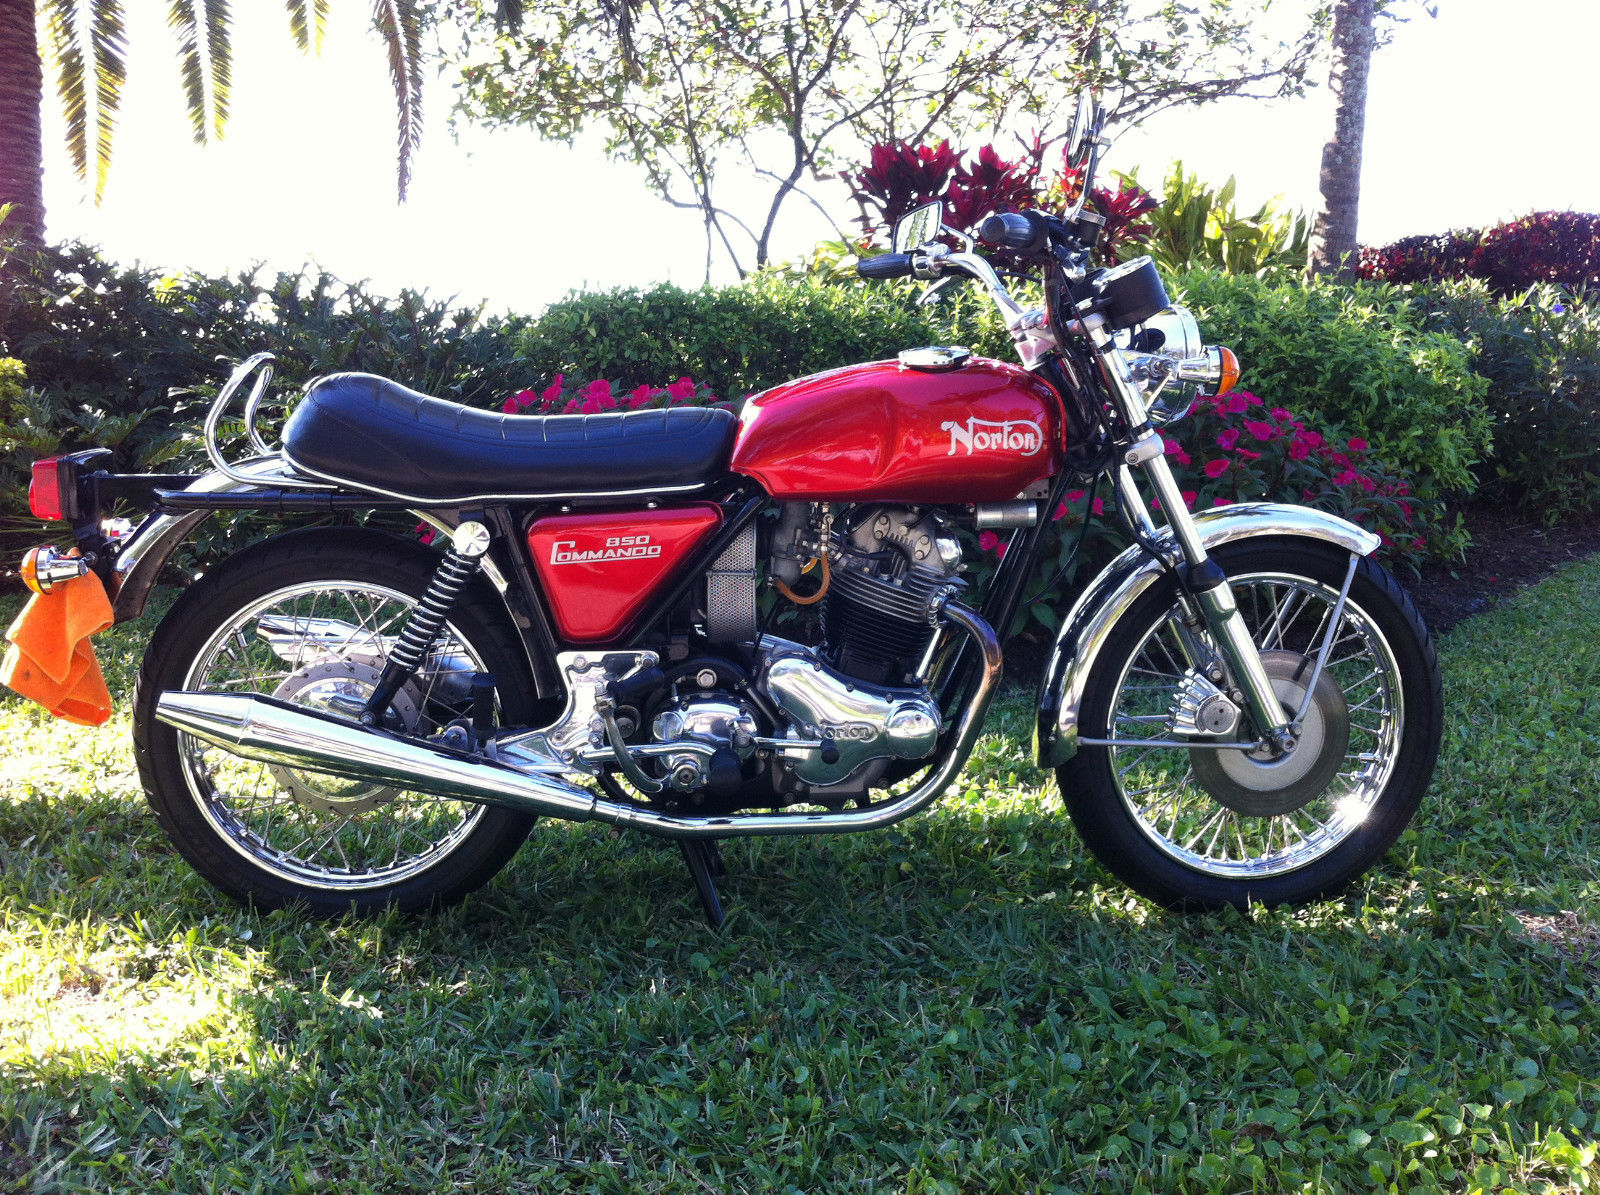 Norton Commando 850 - 1974 - Right Side View, Seat, Petrol Tank, Muffler, Wheels, Frame and Forks.